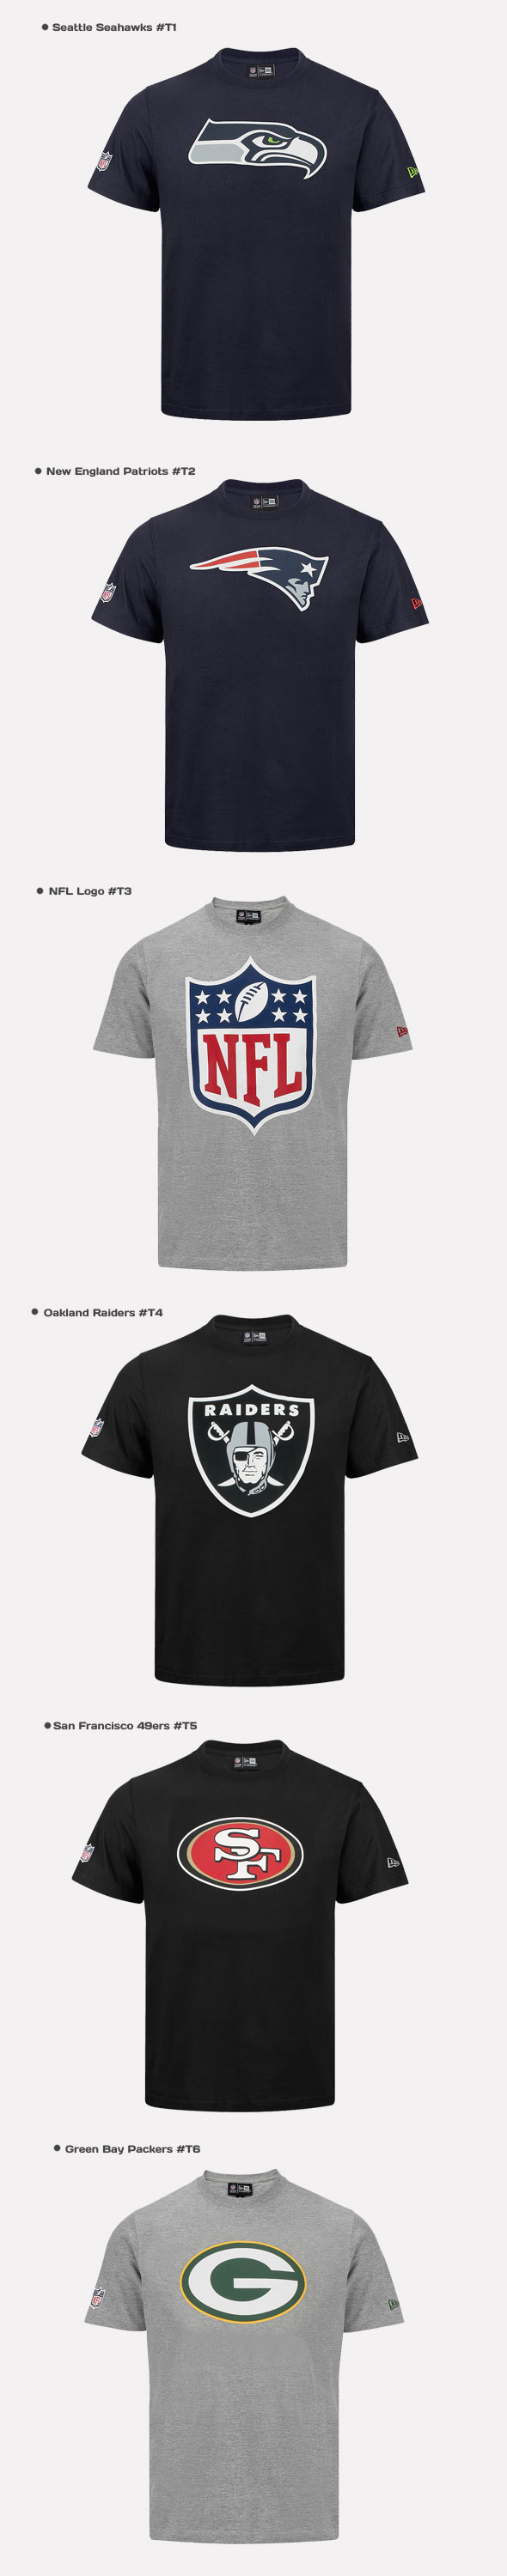 f4bcefecde New Era T-Shirt NFL Football Jersey Seattle Seahwaks Patriots Bears ...